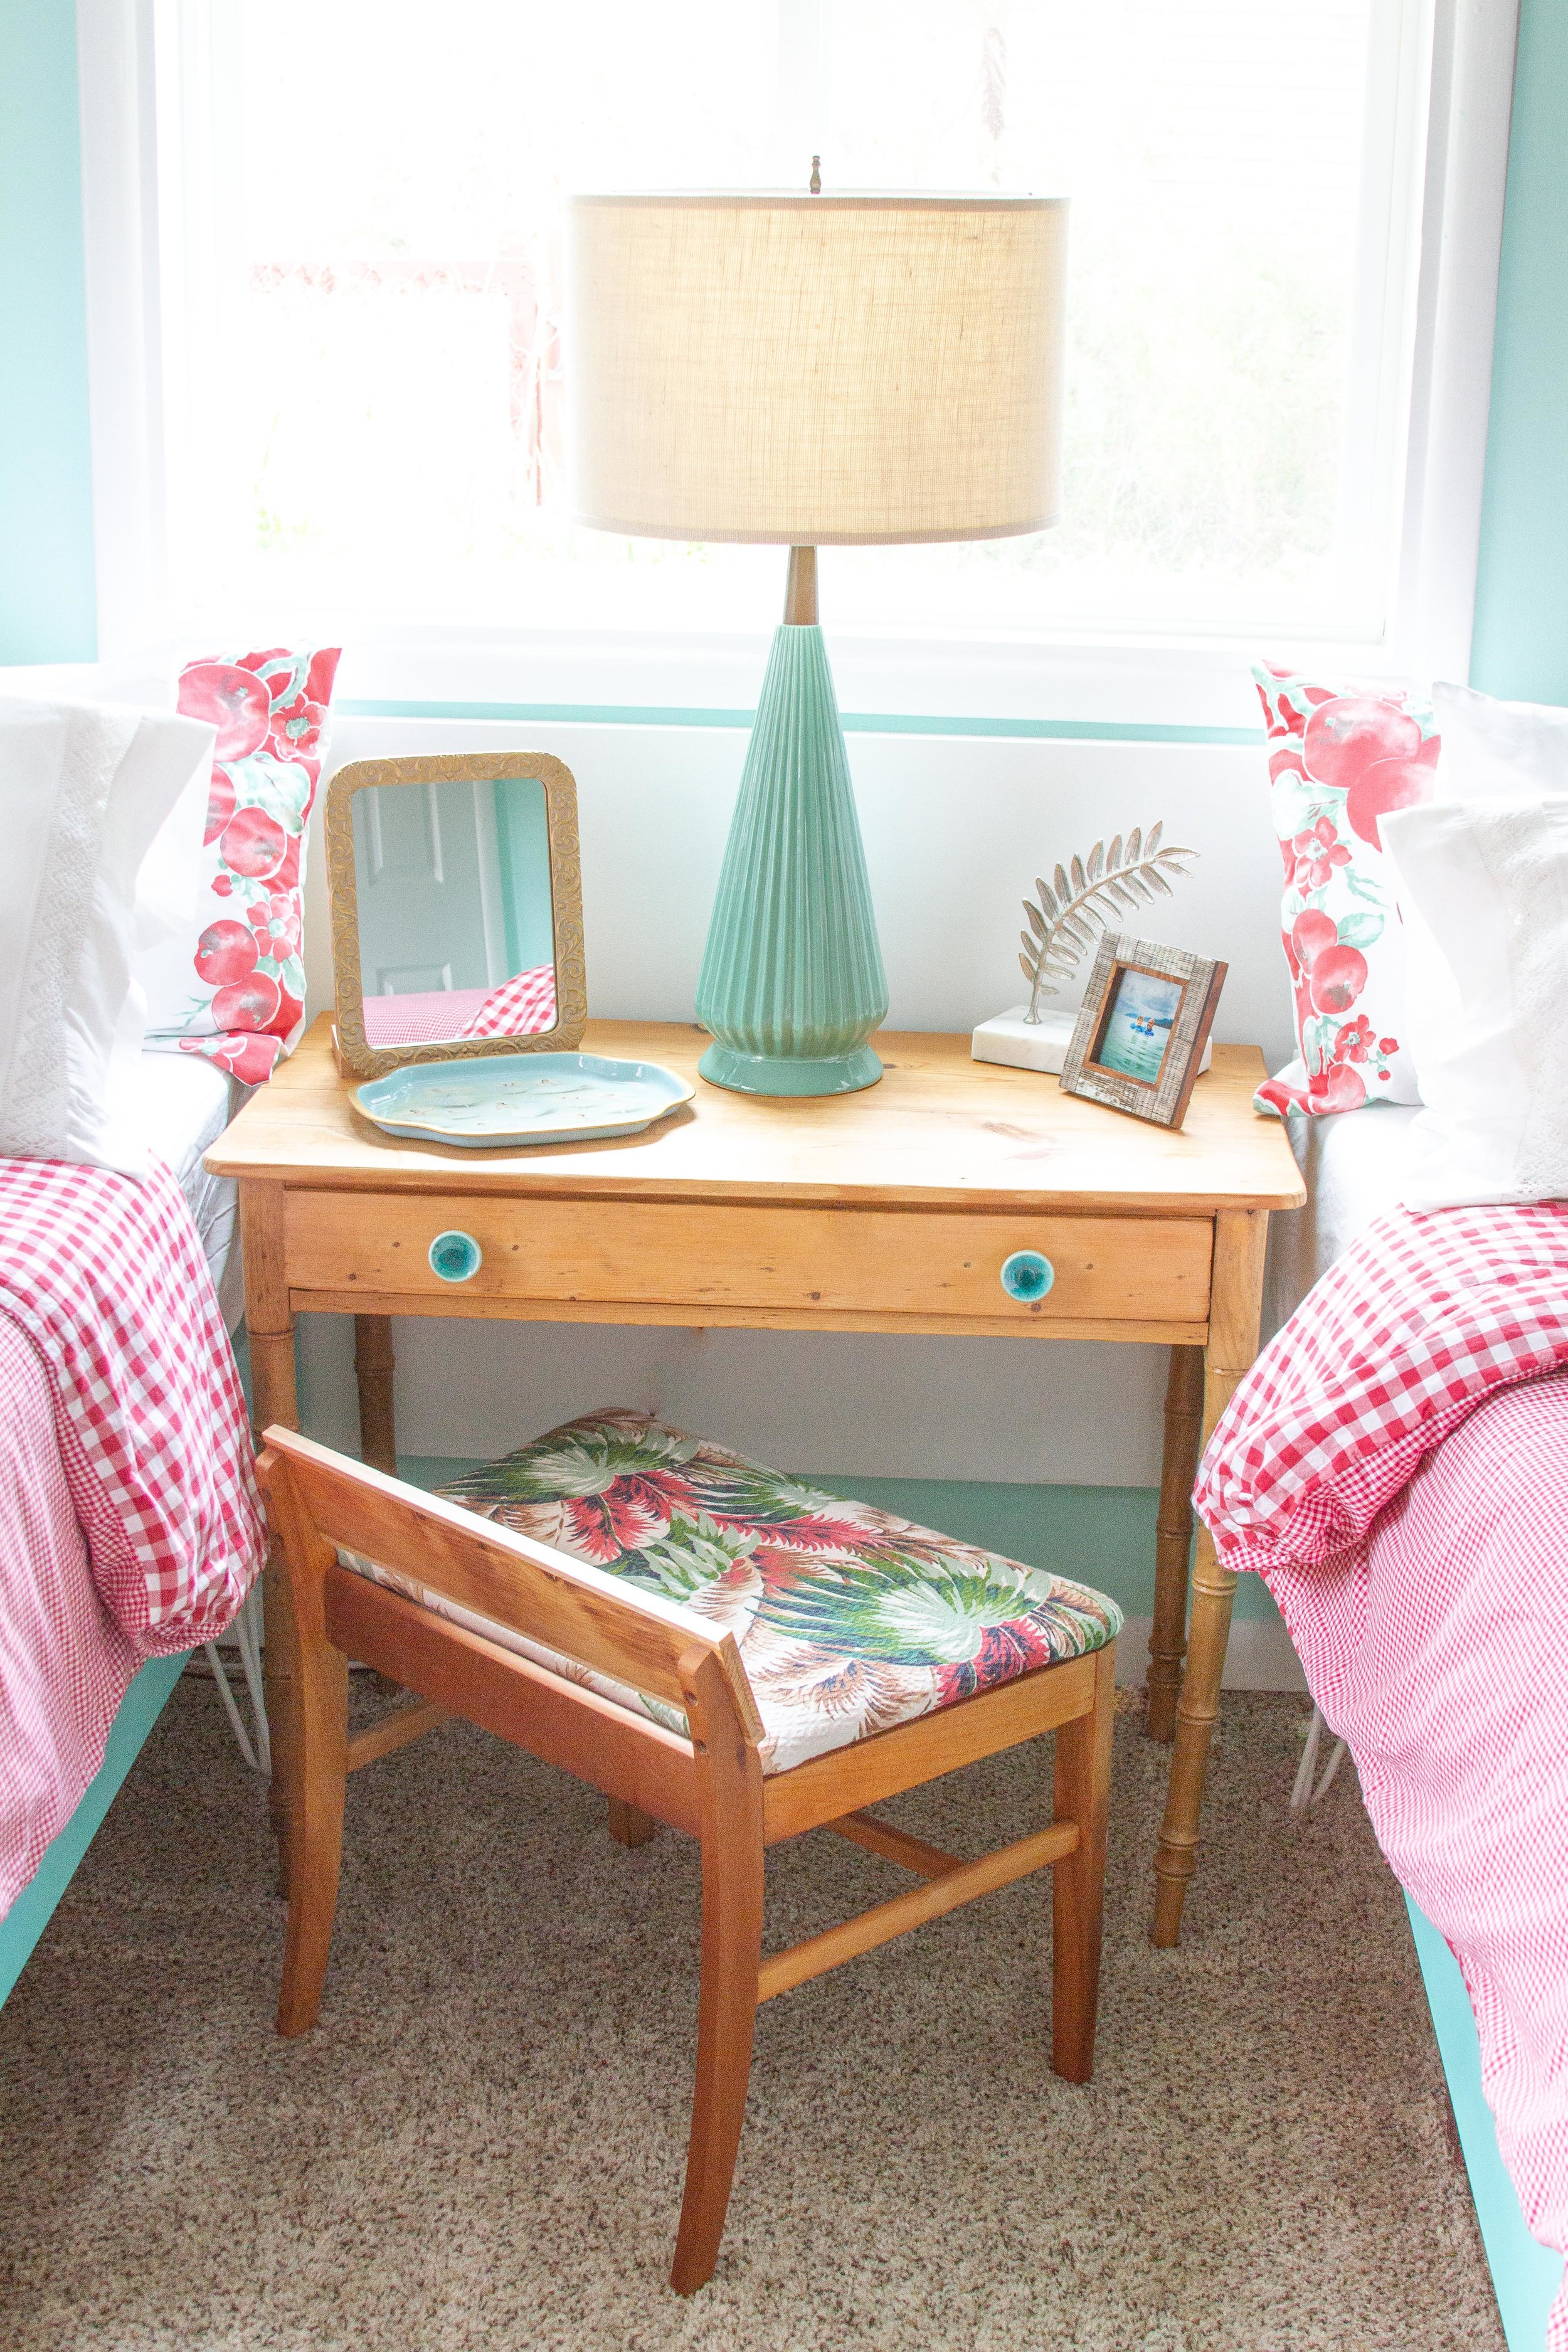 The refreshed vintage table and a refinished bench